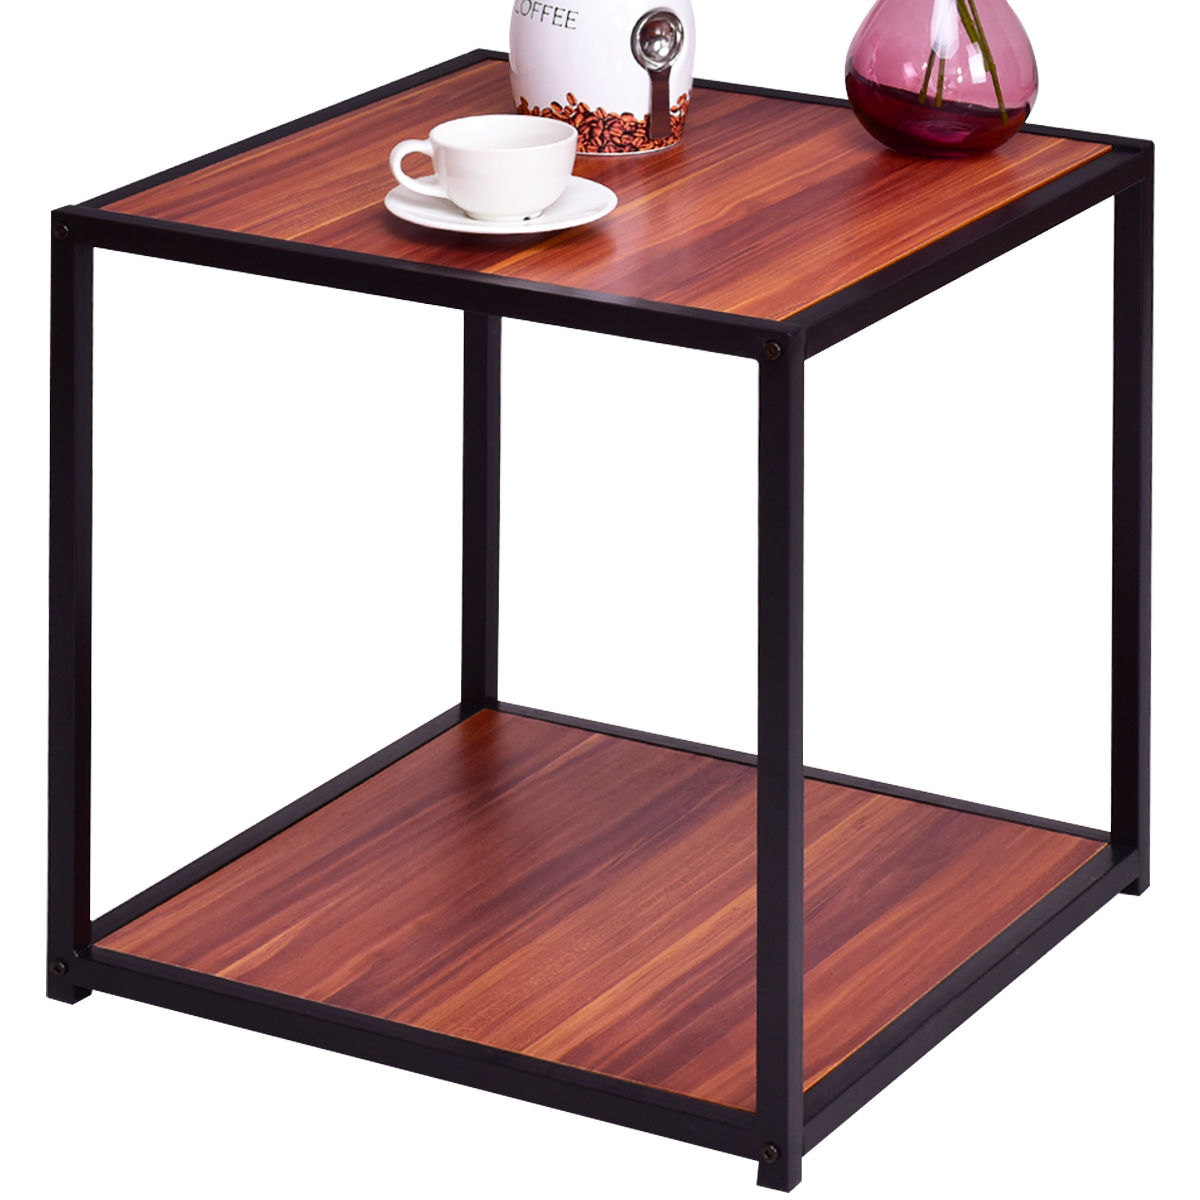 Giantex End Table Side Sofa Square Modern Coffee Tables Tea Stand Living Room Furniture Decor With Bottom Shelf HW55399<br>